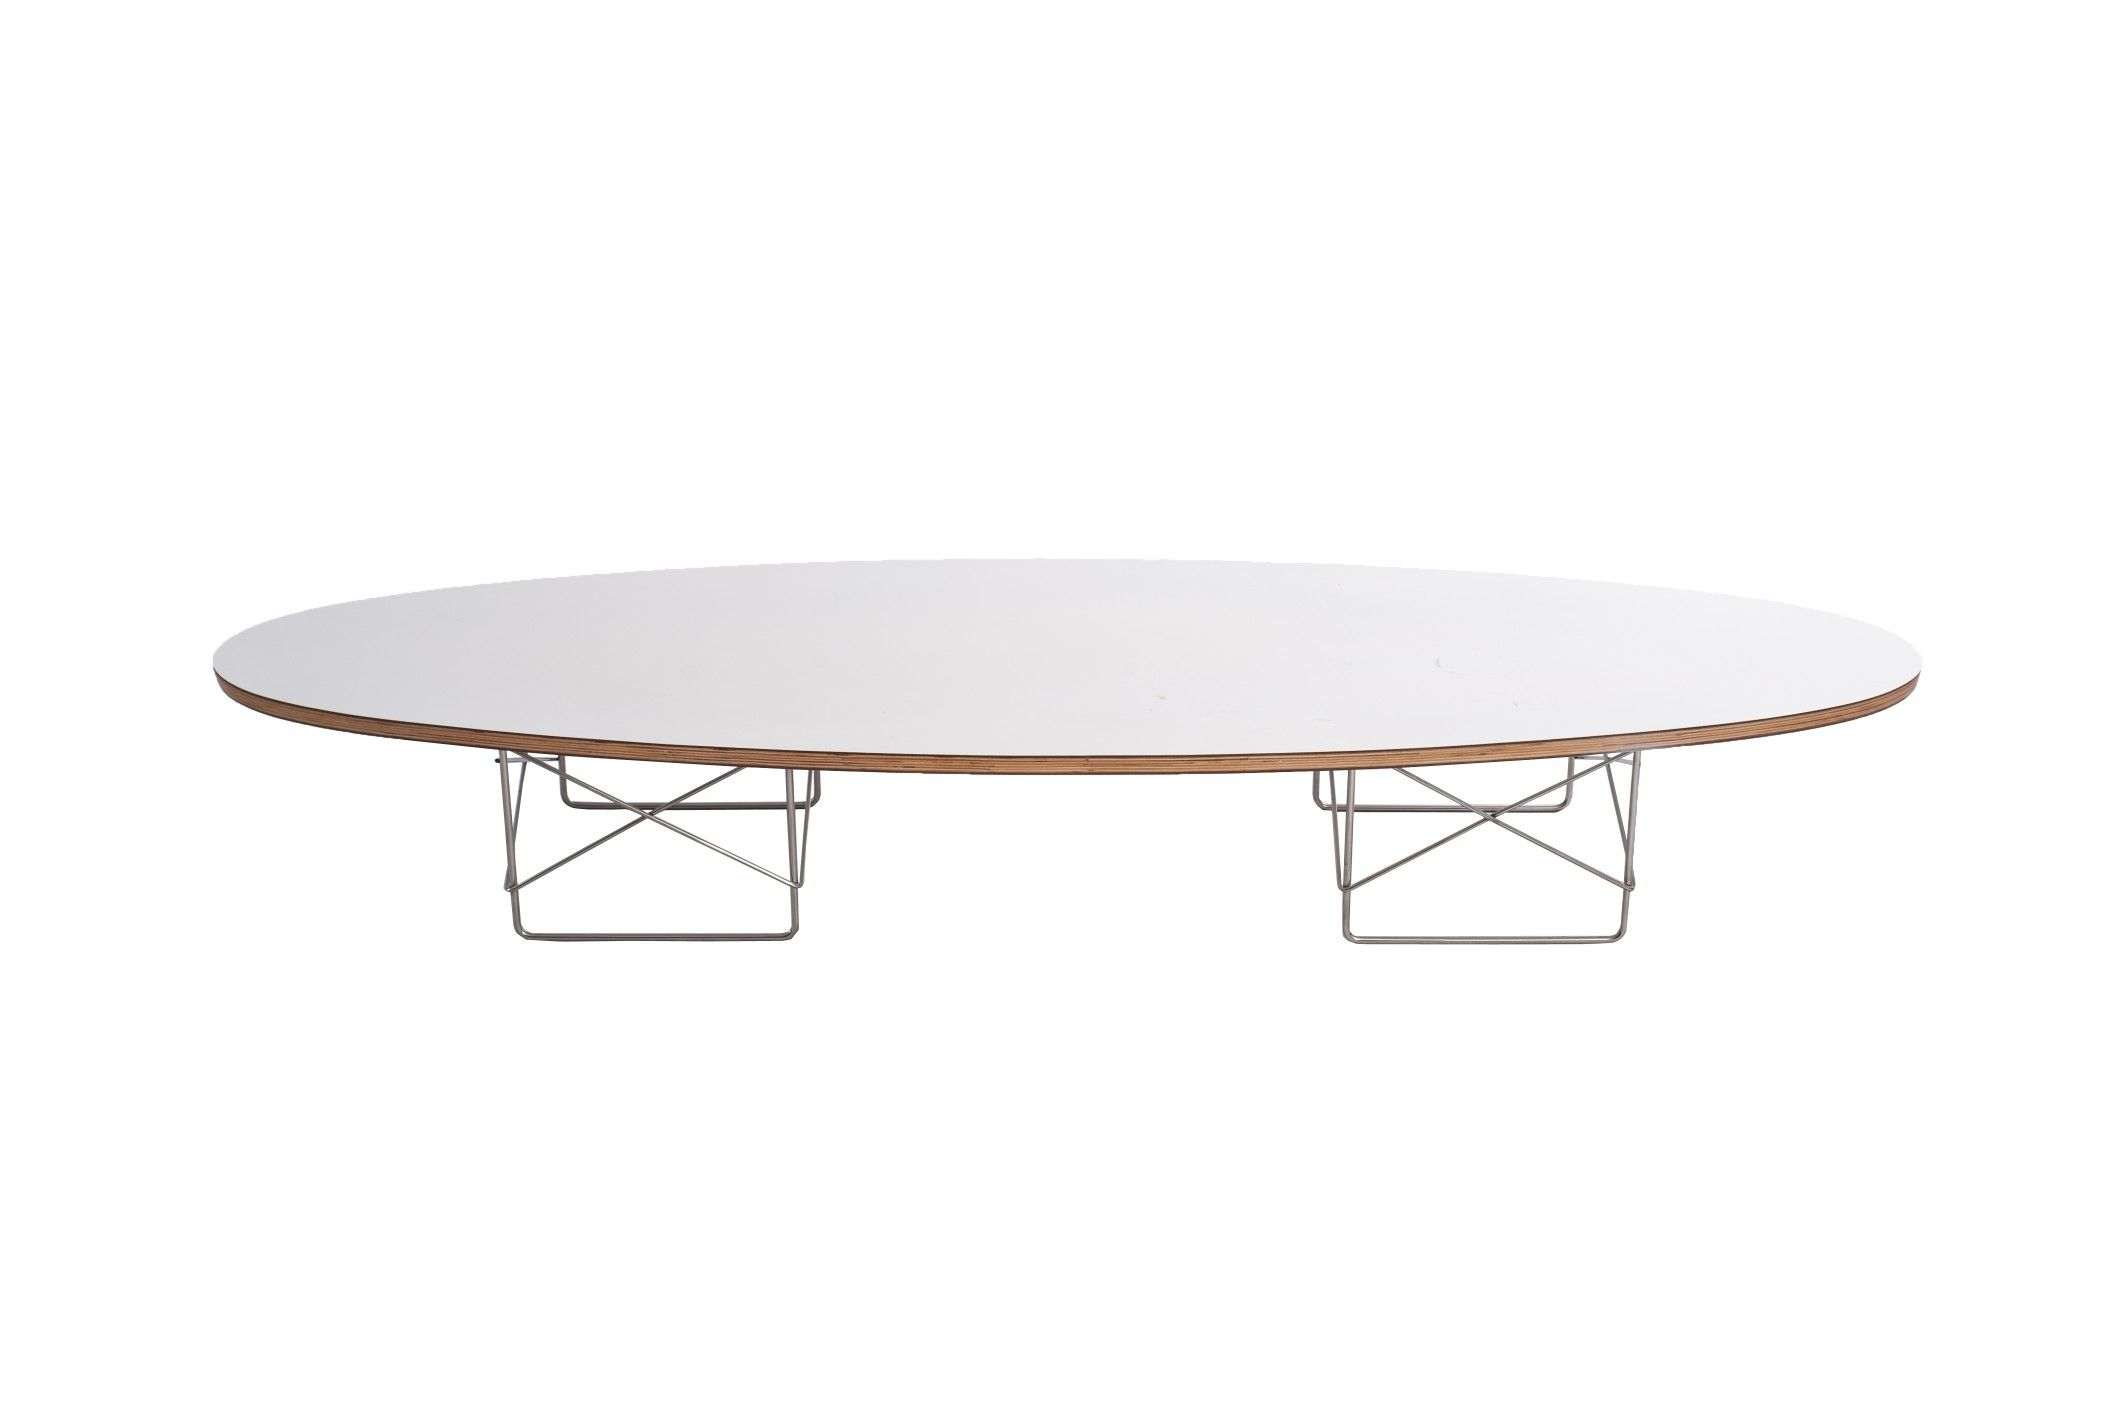 Eames Style Elliptical Table   Get This Furniture At An Affordable Price Of  U20ac Only At CA Design.